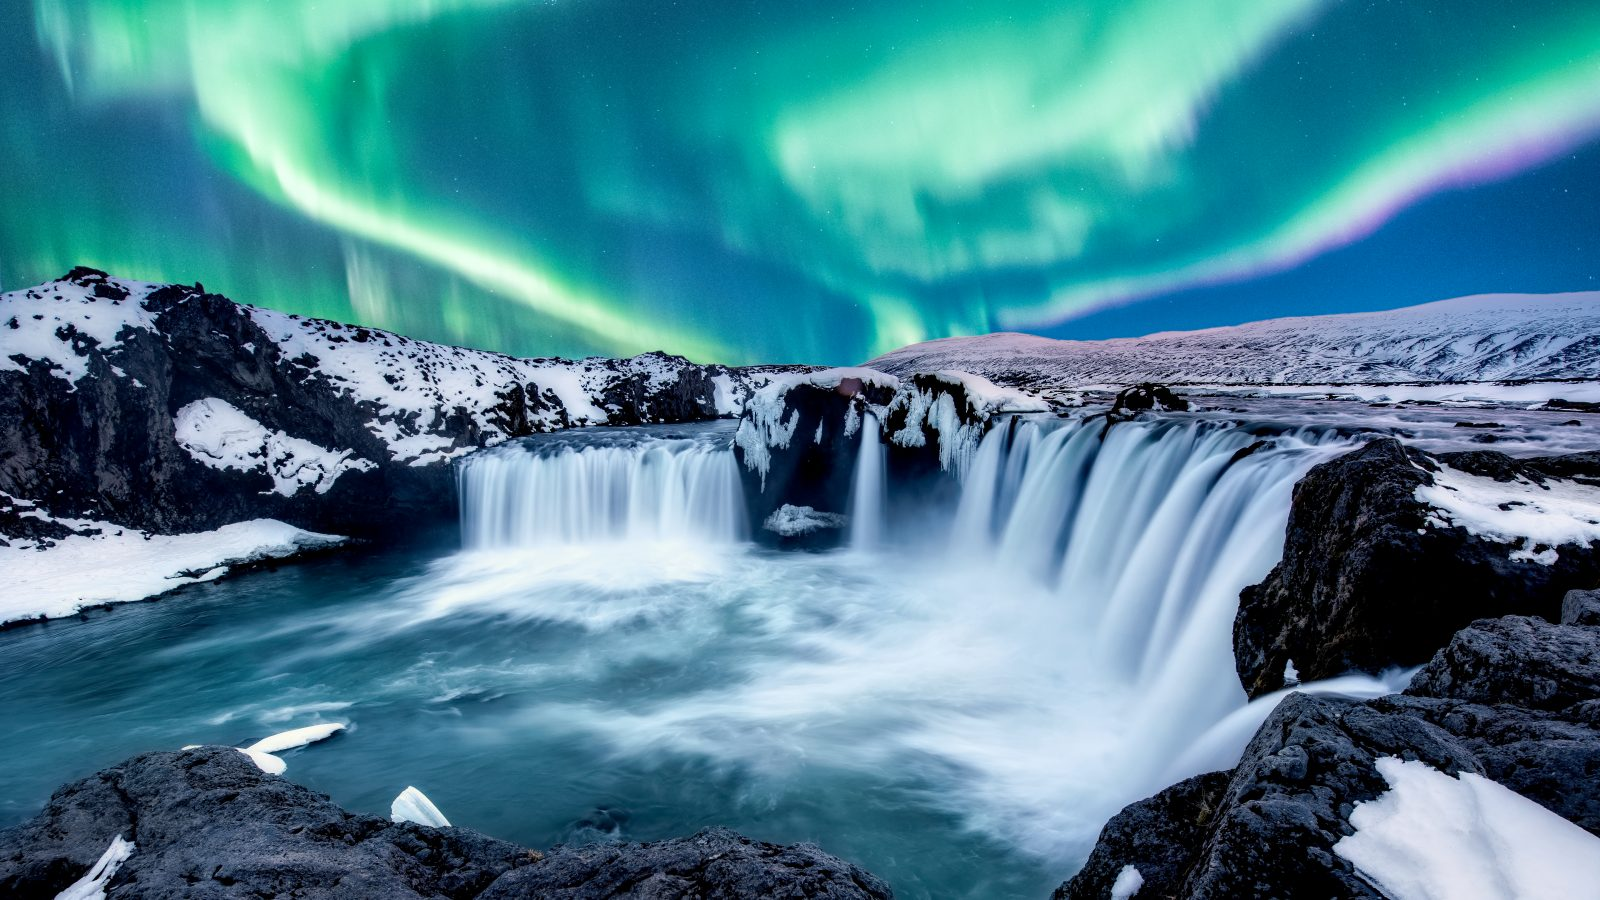 godafoss waterfall in iceland with northern lights